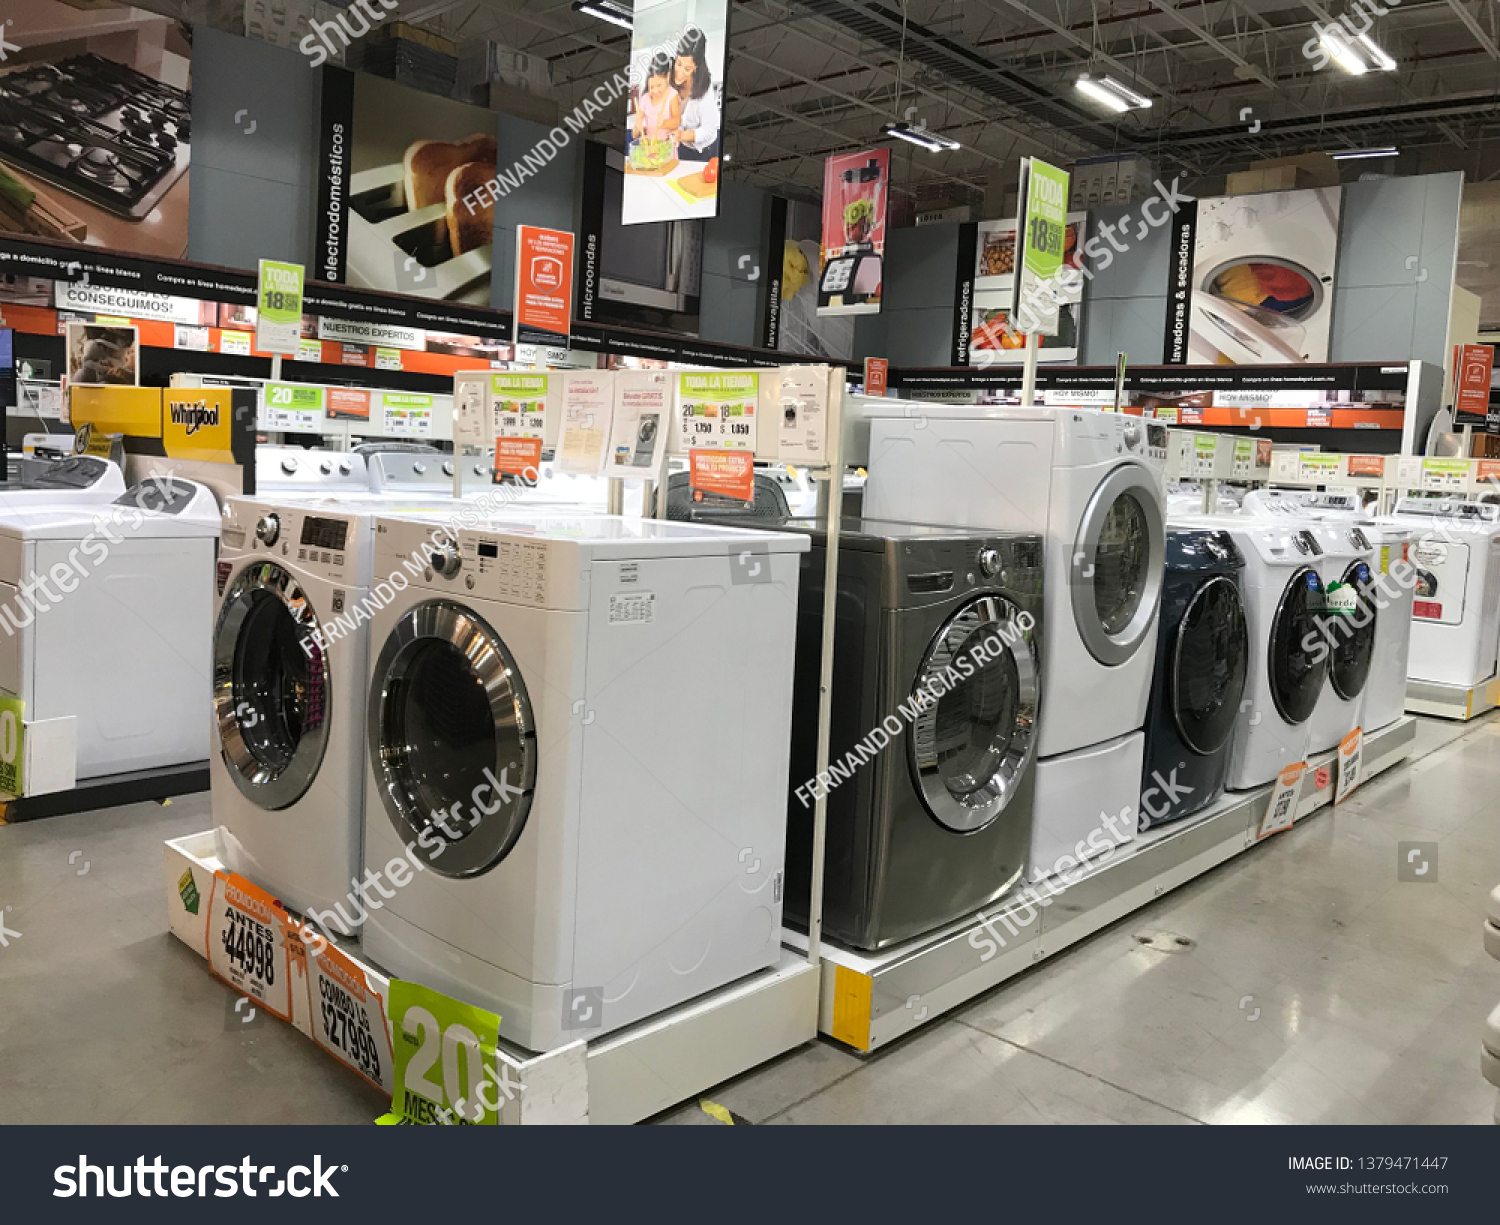 Aguascalientes 10082018 Home Depot American Retailer Stock Photo Edit Now 1379471447